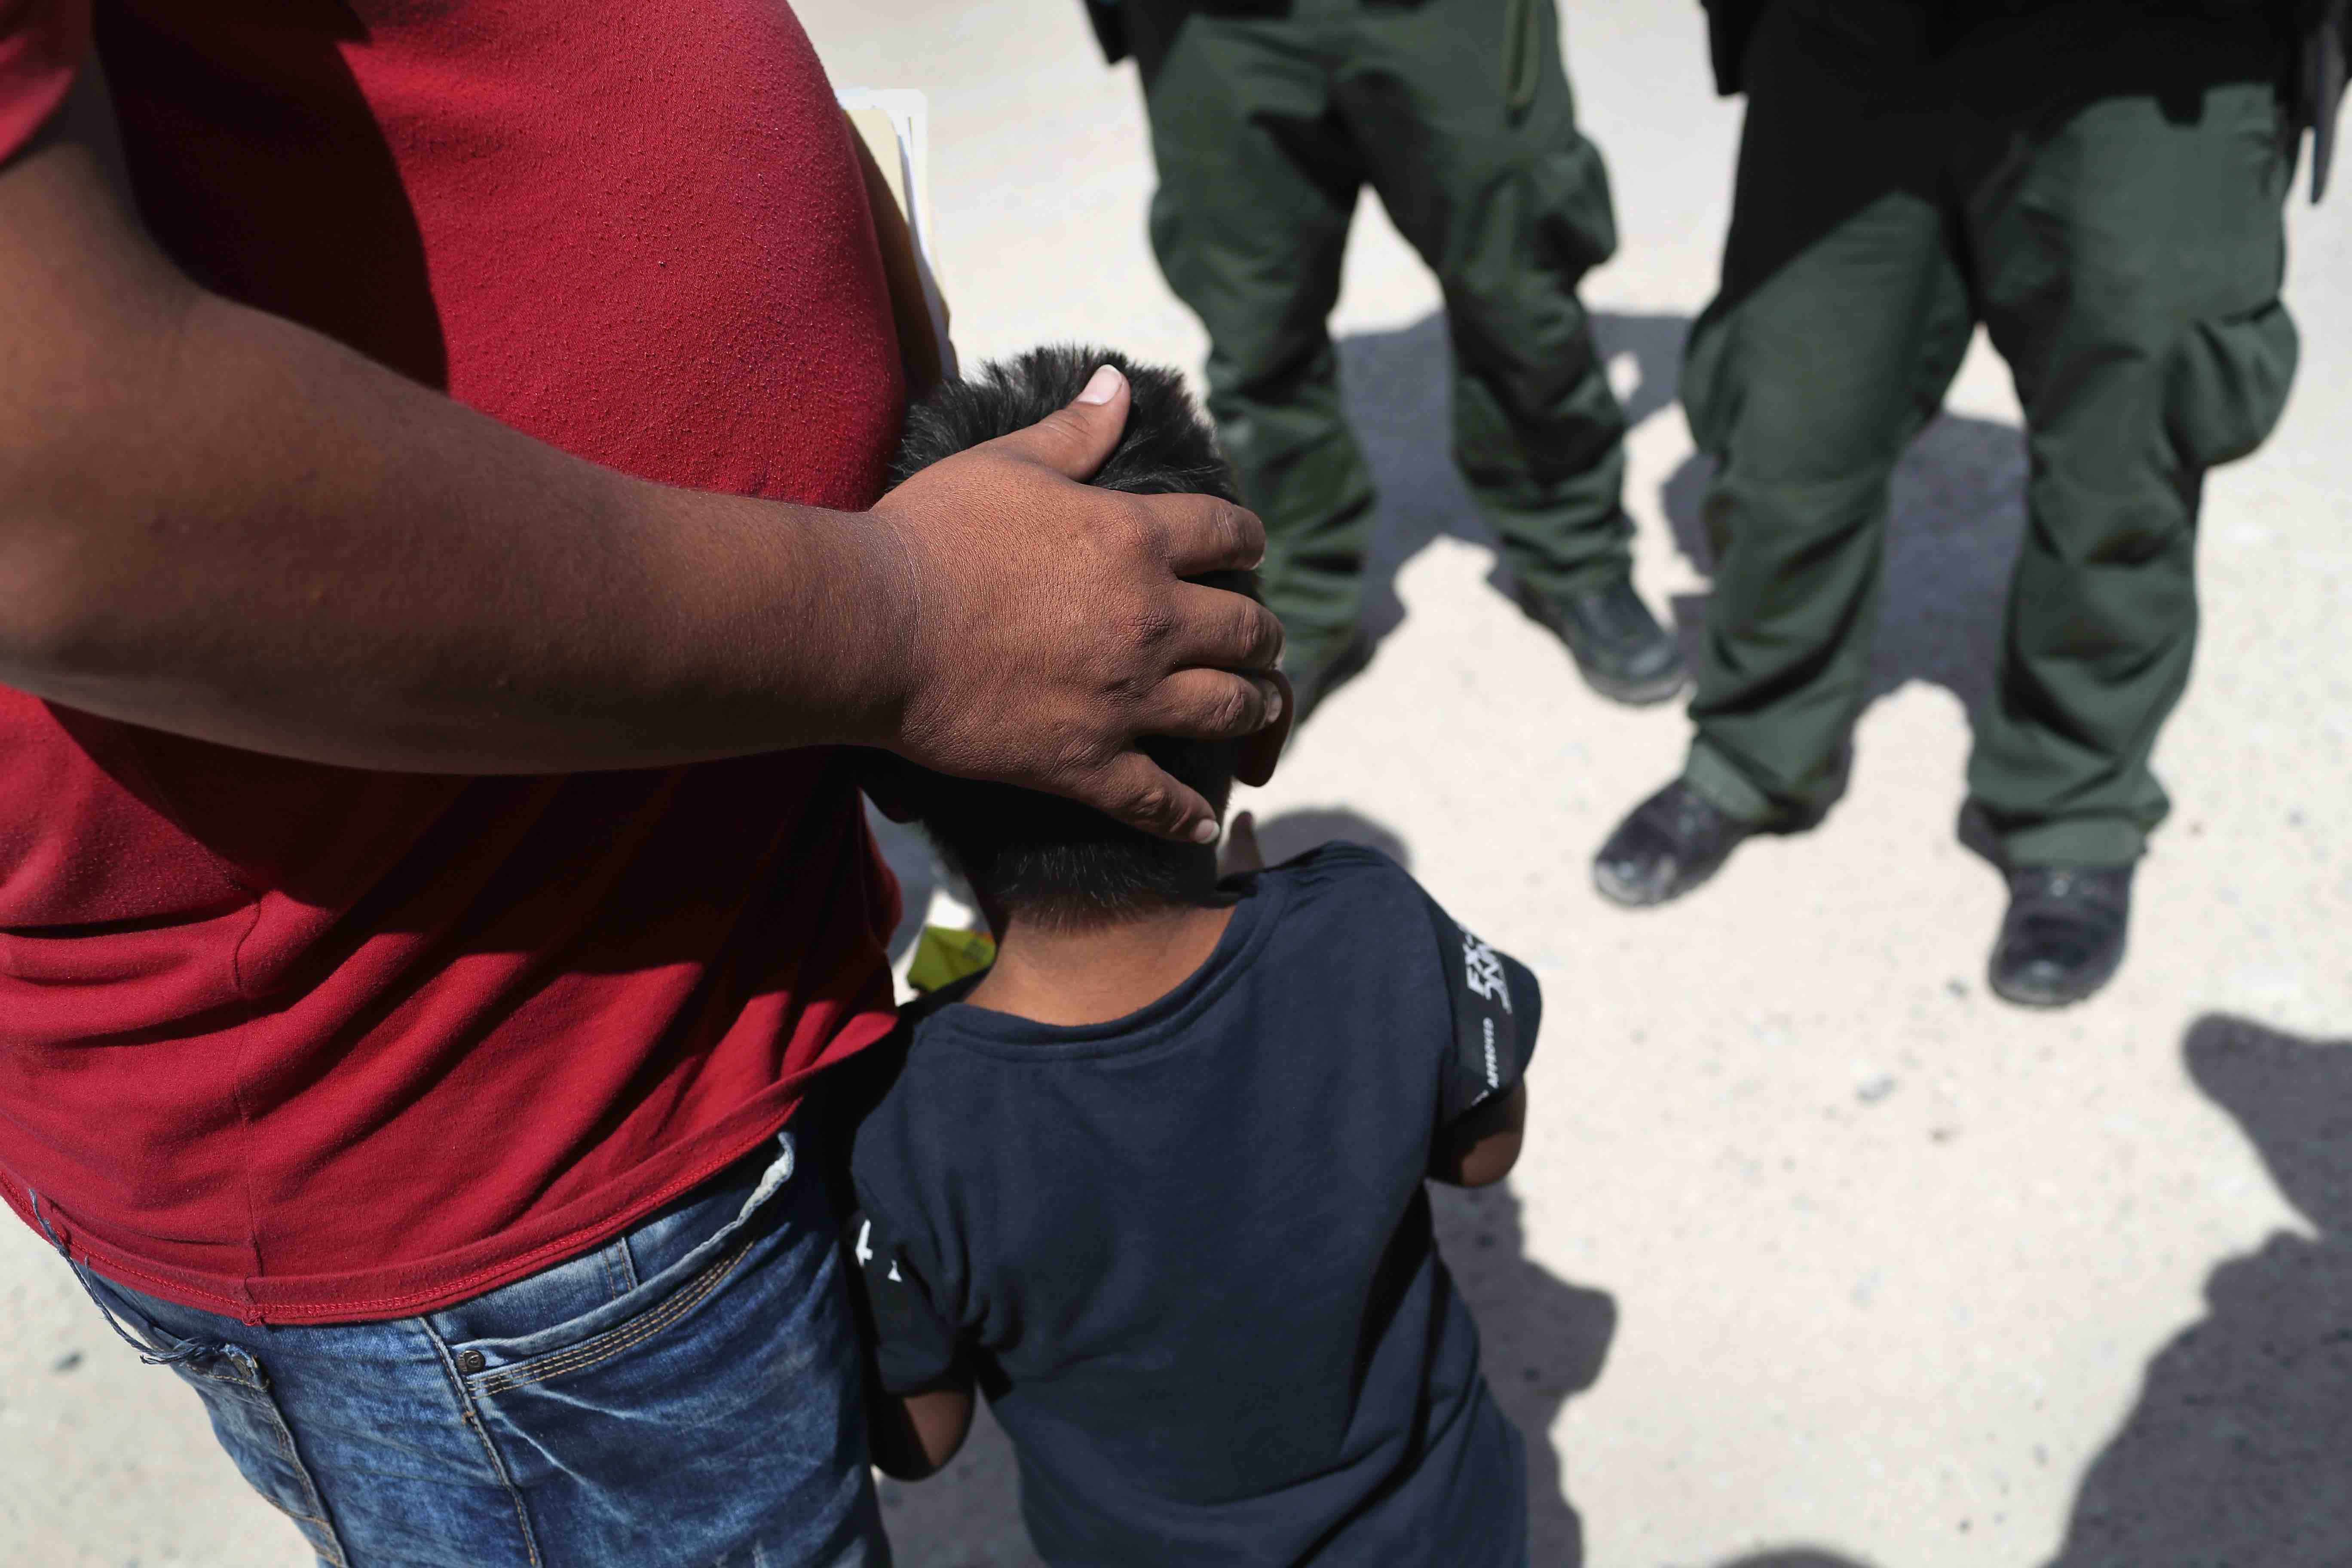 This Mexican Airline Offers Free Flights to Reunite Immigrant Children Split From Their Parents